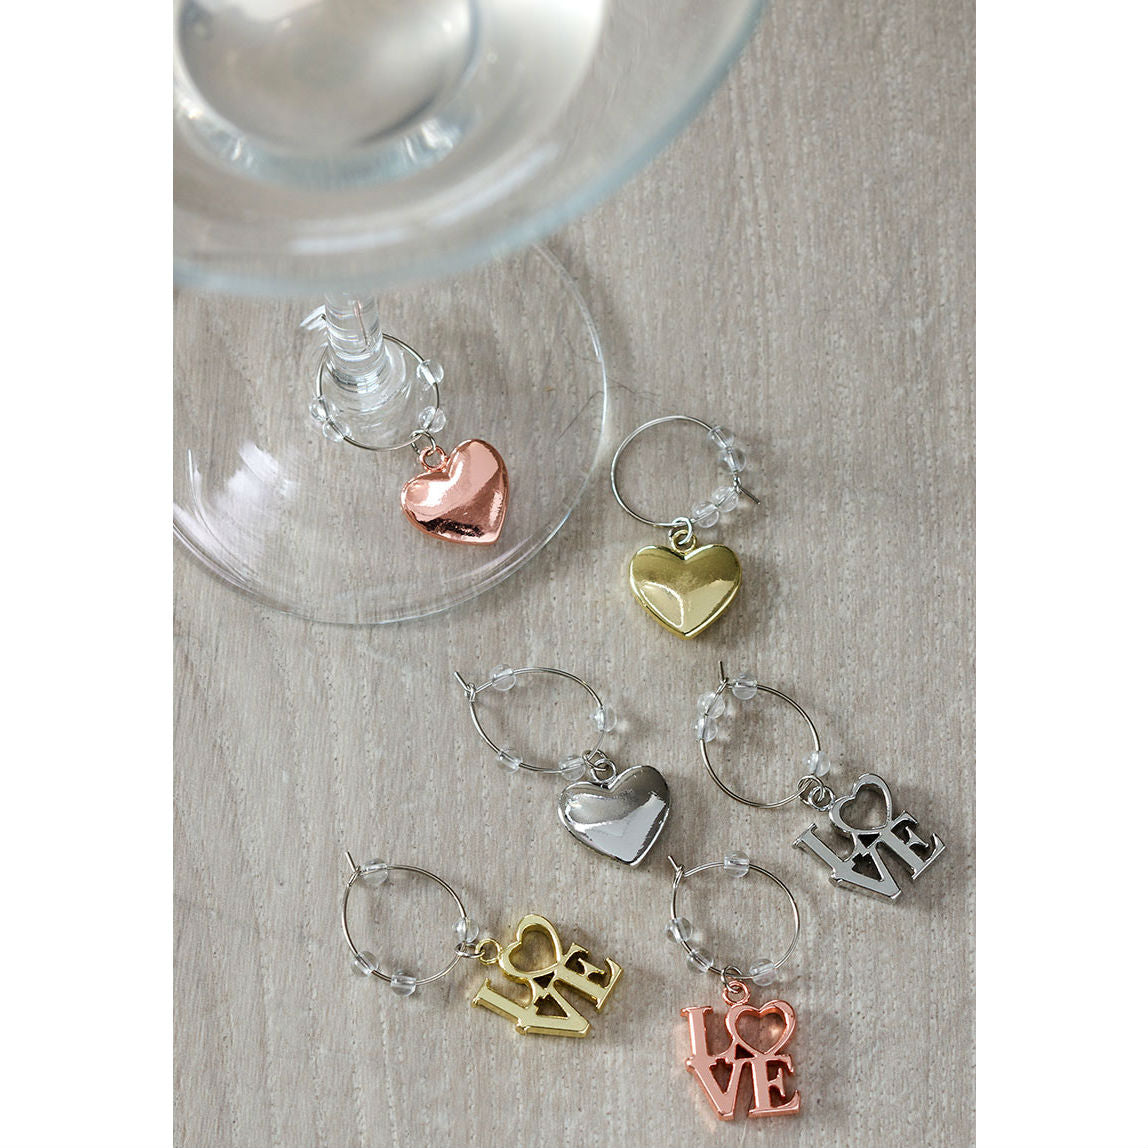 Set of 6 Romantic Wine Charms - The Love Trees